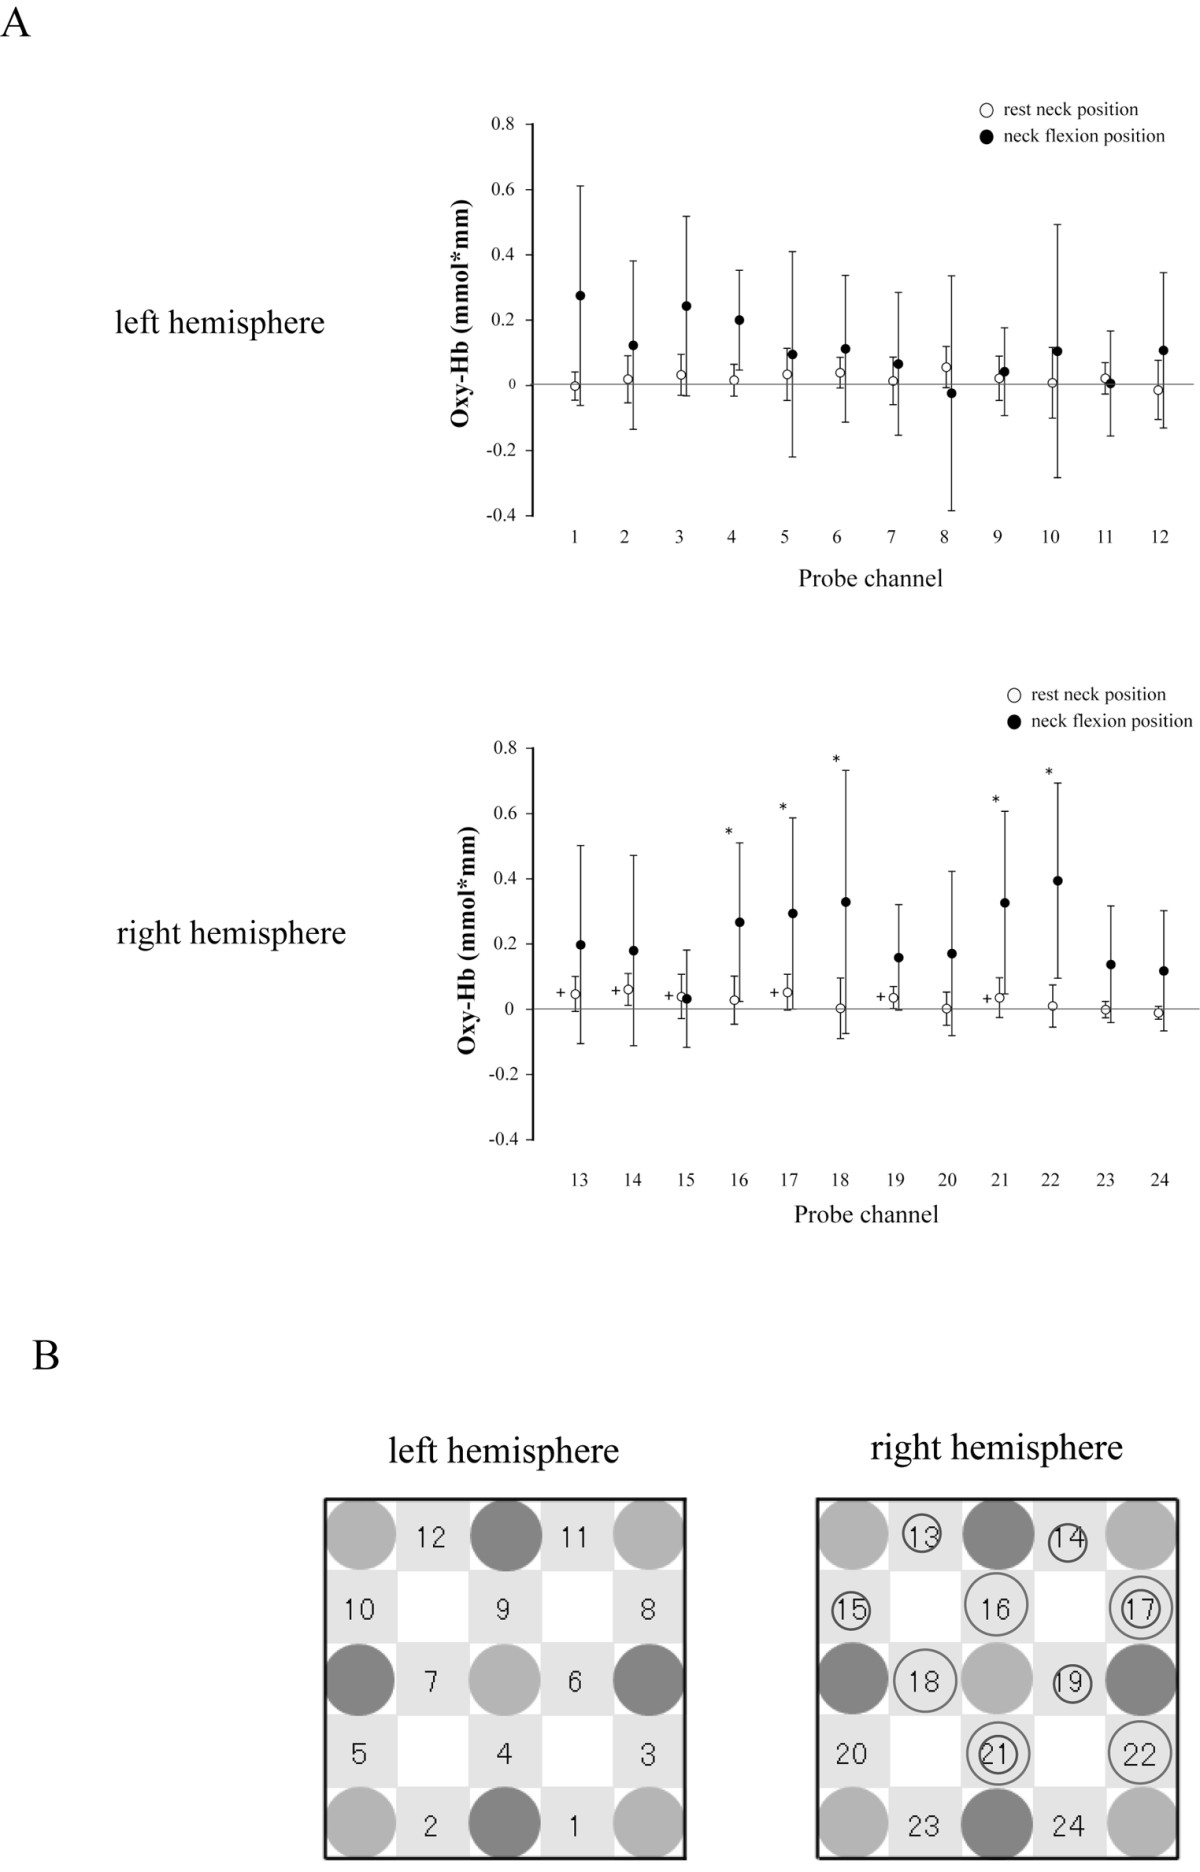 https://static-content.springer.com/image/art%3A10.1186%2F1880-6805-31-31/MediaObjects/40101_2012_Article_29_Fig8_HTML.jpg